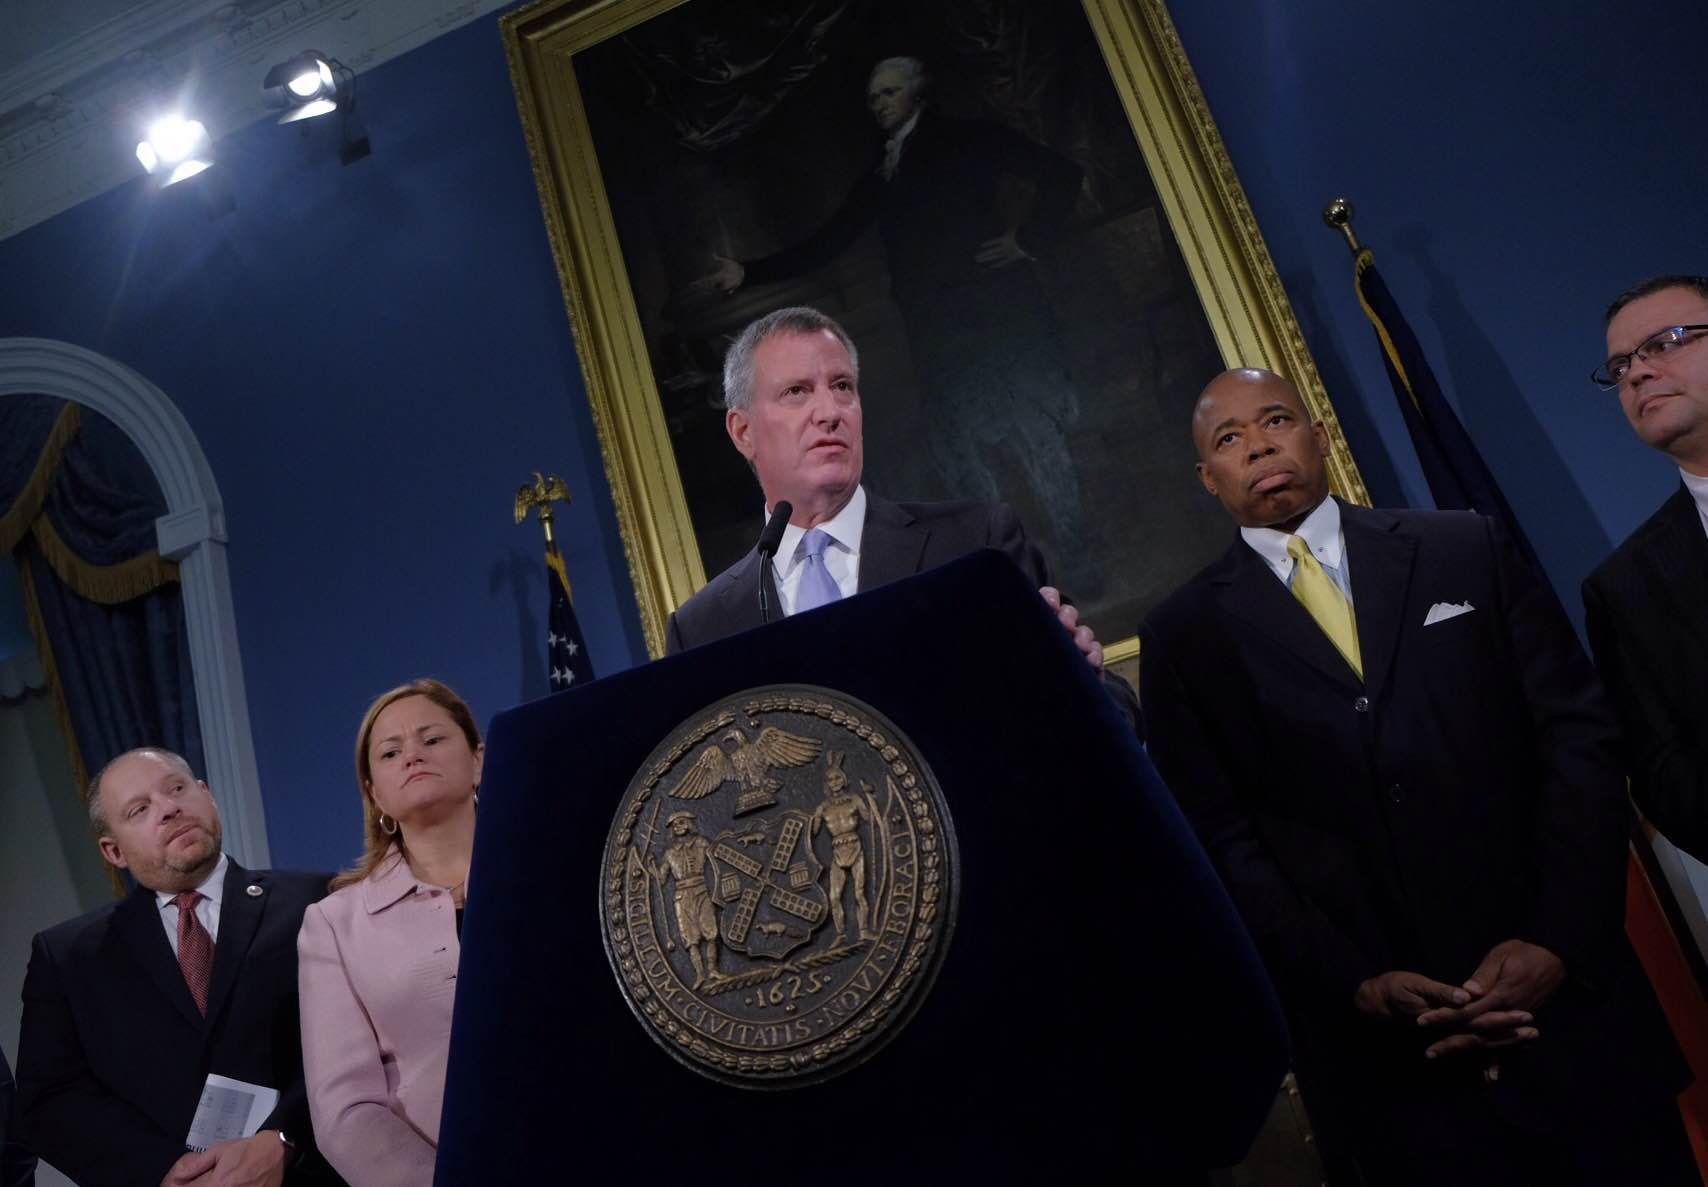 Mayor Bill de Blasio discusses proposed changes to bail at a City Hall press conference today. (Photo: William Alatriste/New York City Council)